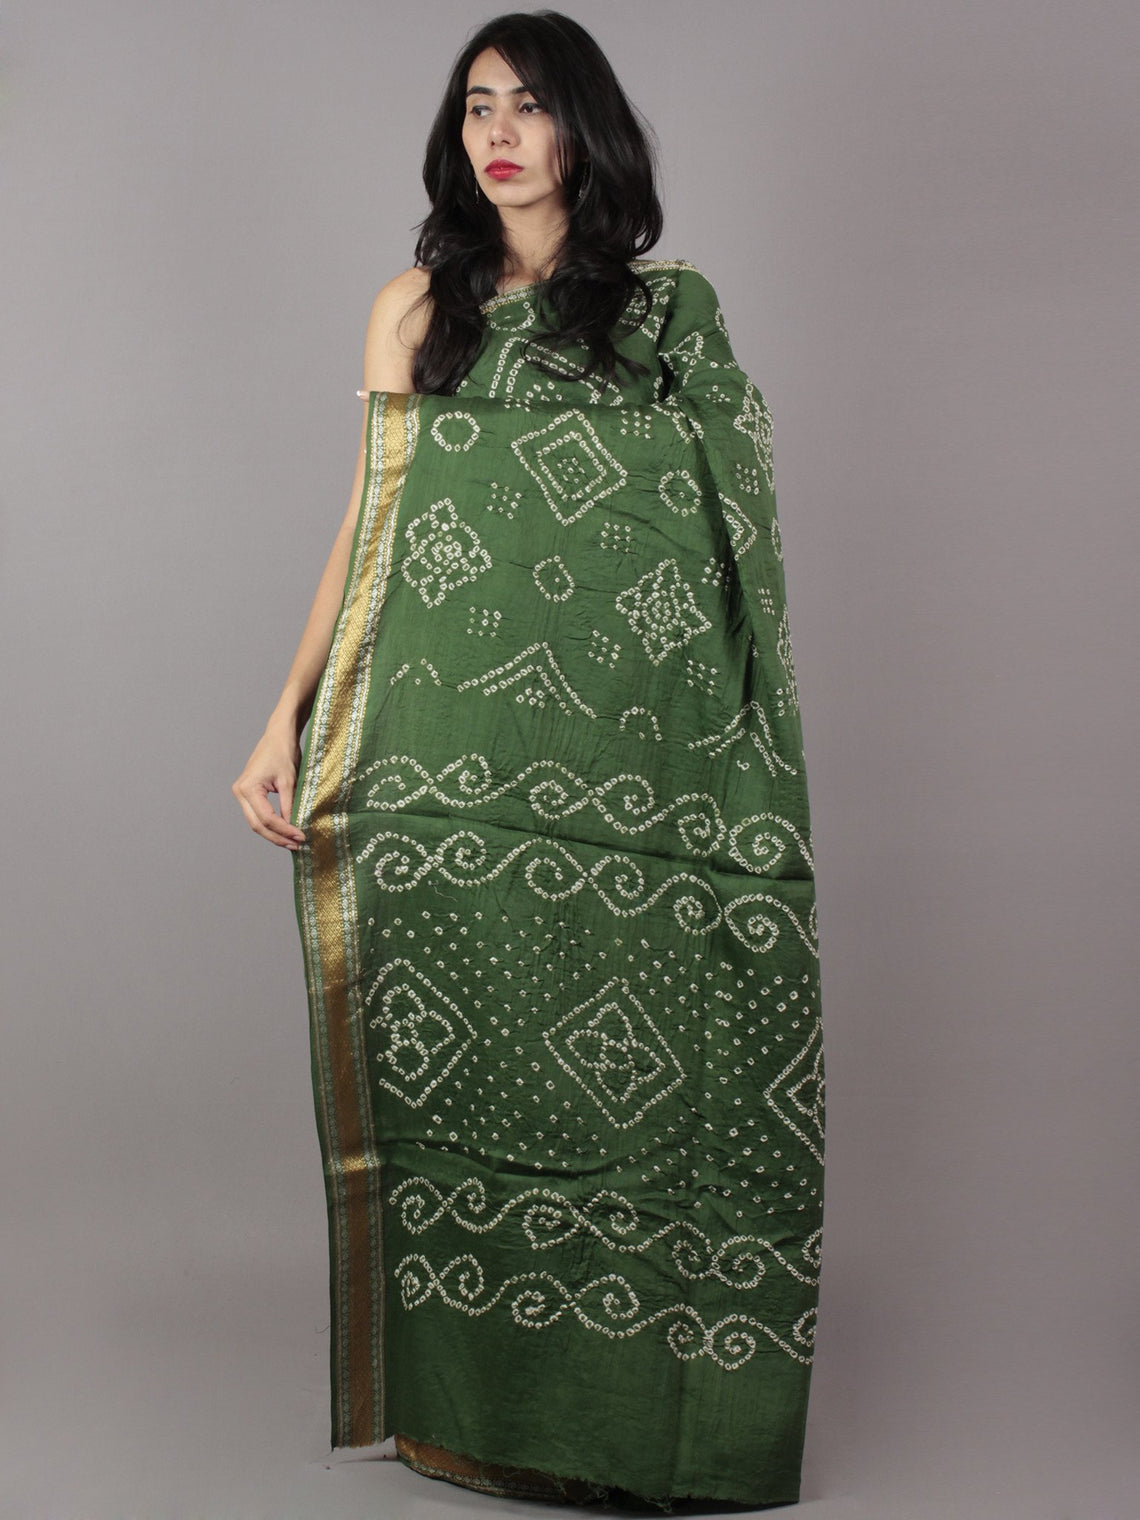 Pine Green Ivory Hand Tie & Dye Bandhej Glace Cotton Saree With Resham Border - S031701740